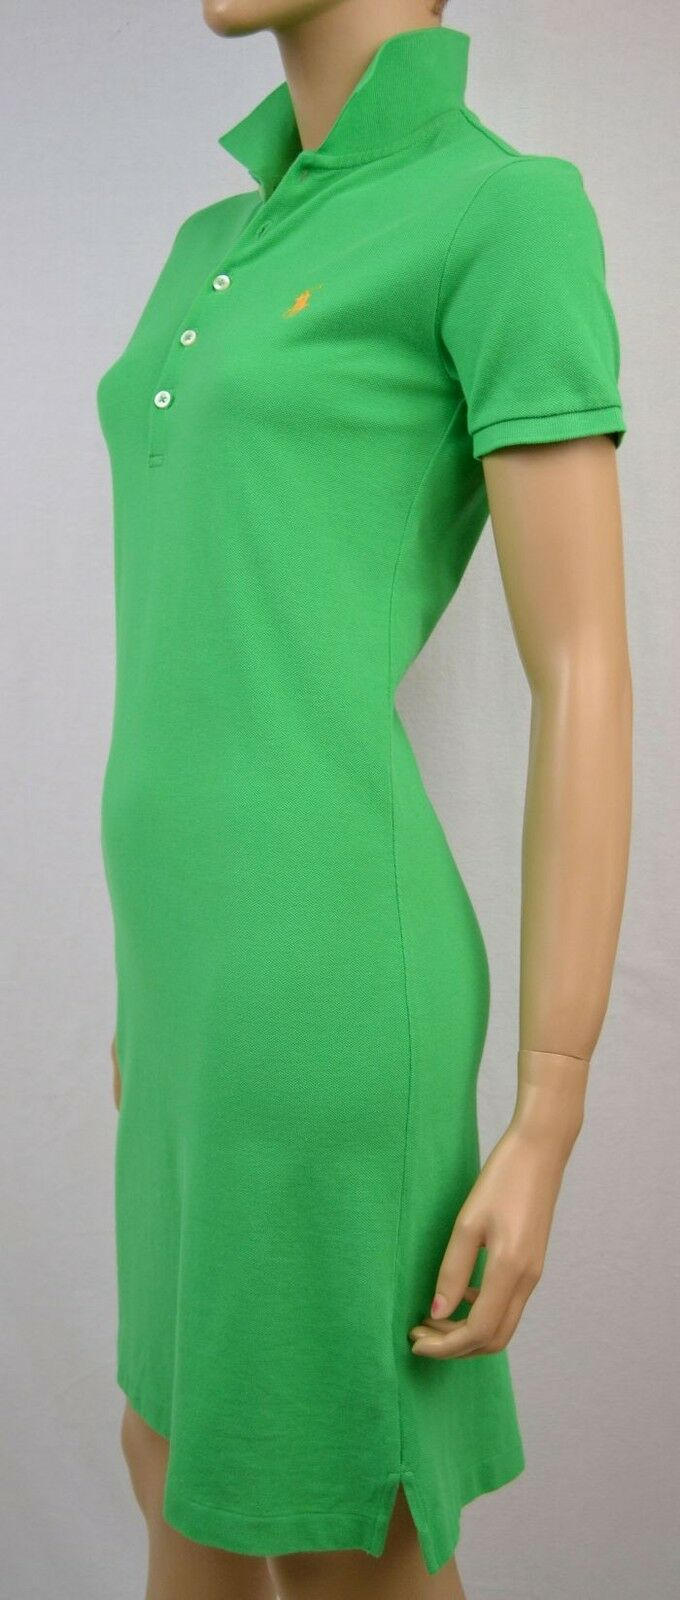 Ralph Lauren Grün POLO DRESS Gelb PONY NWT XS